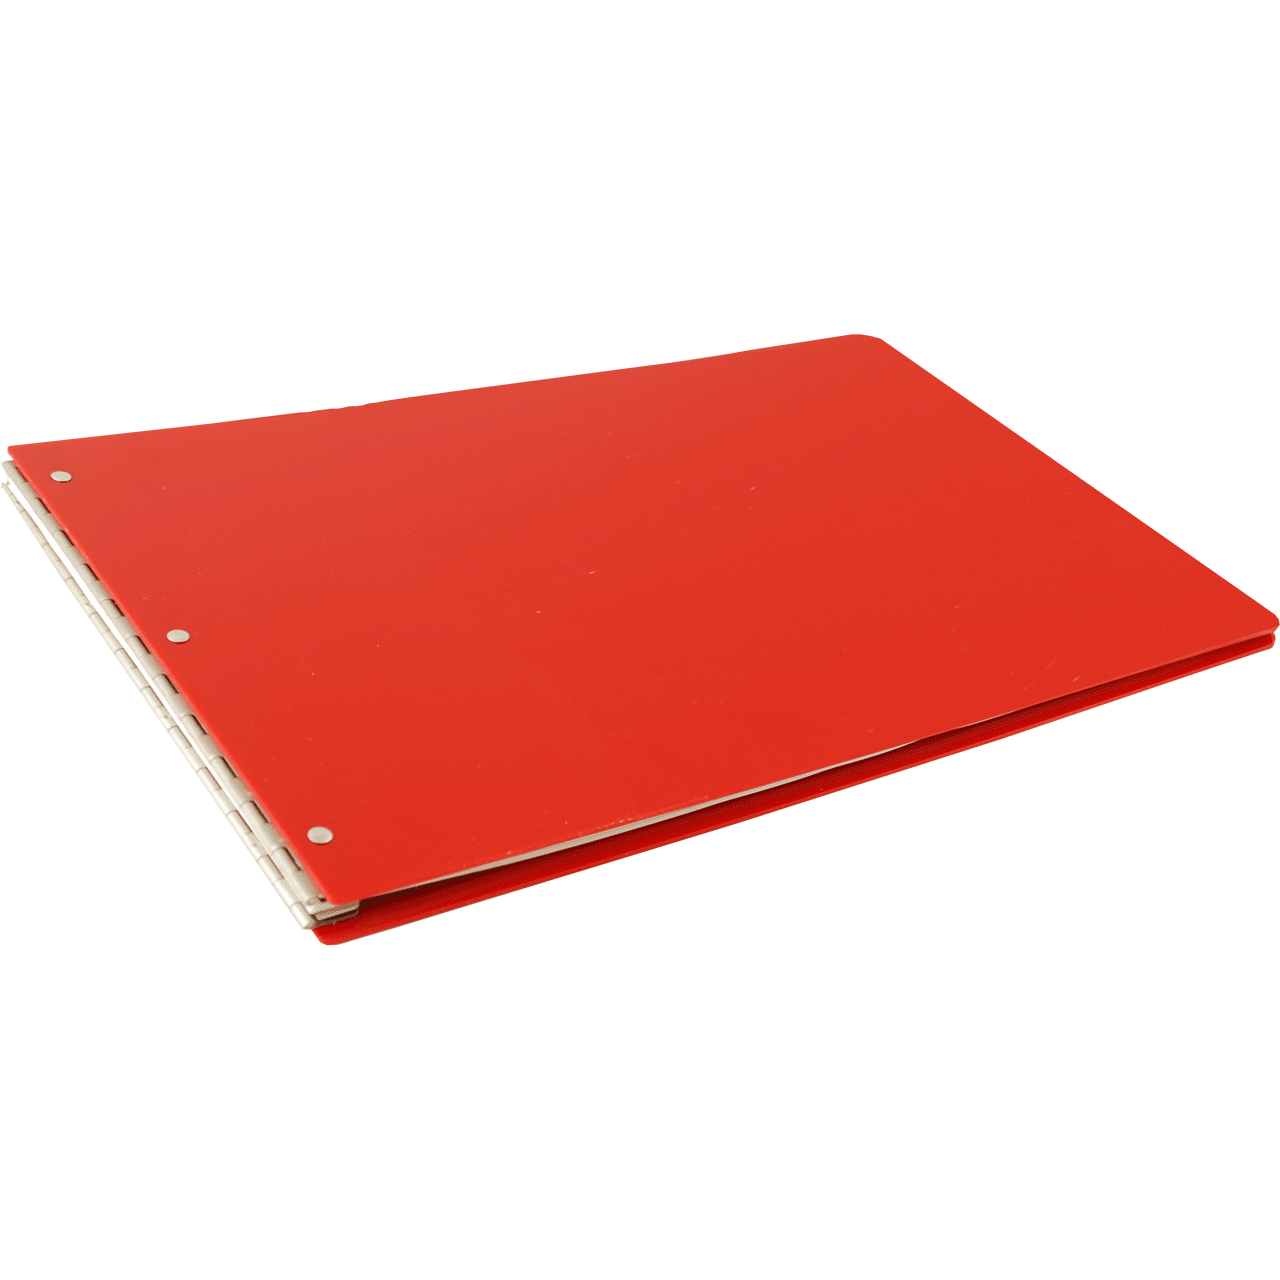 11x17 Screw Post Binder Acrylic Panel With Fixed Posts Red